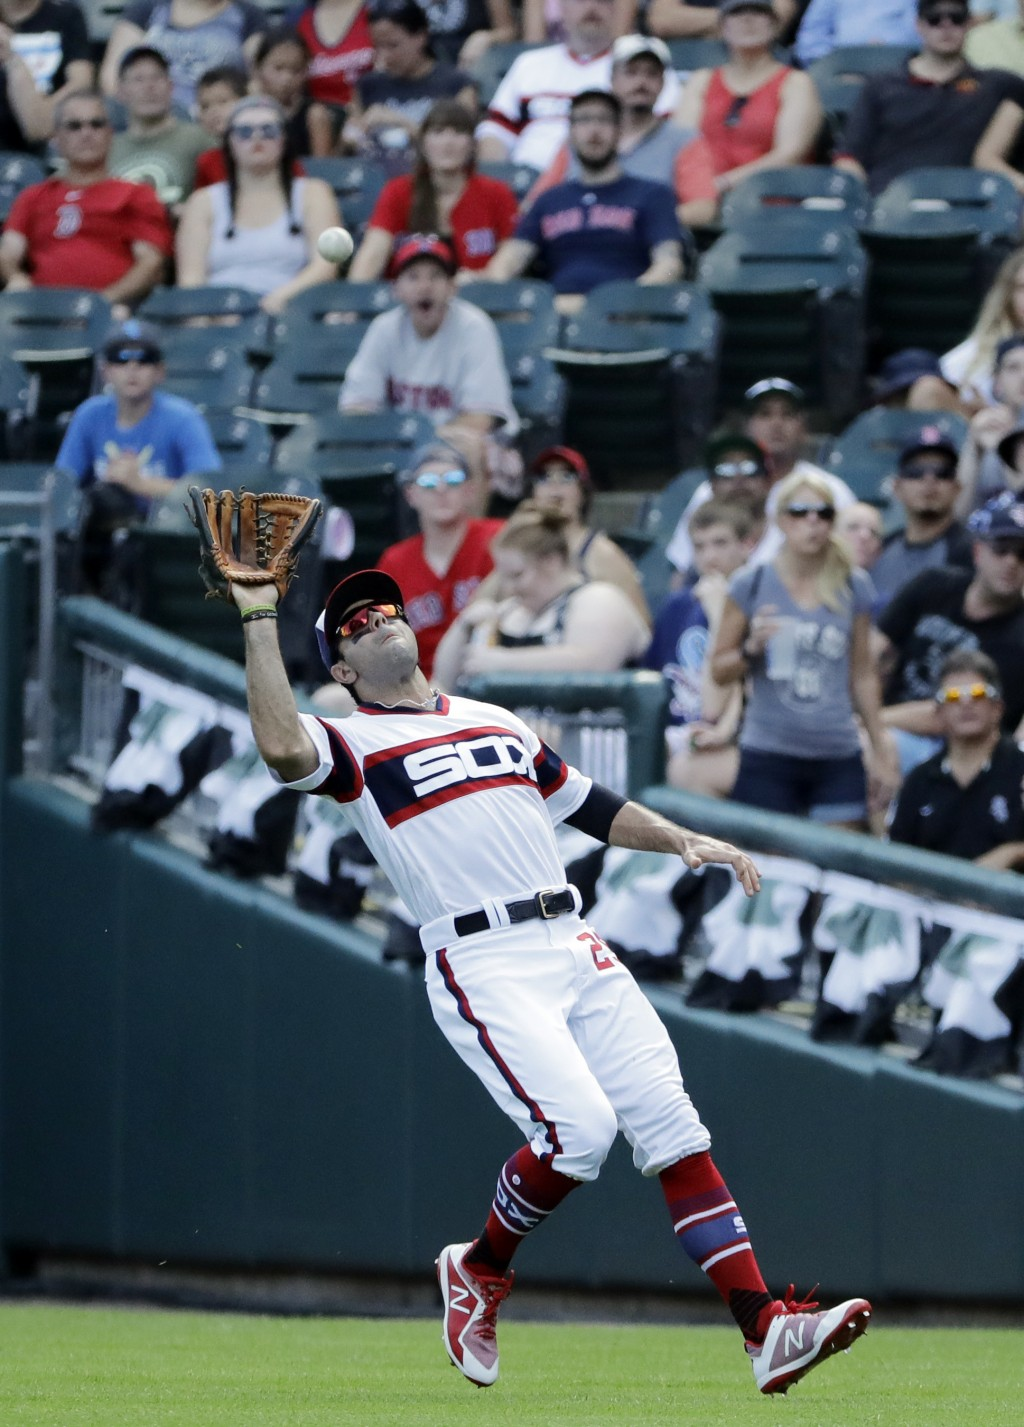 Chicago White Sox right fielder Ryan LaMarre catches a fly ball by Boston Red Sox's Mookie Betts during the first inning of a baseball game Sunday, Se...